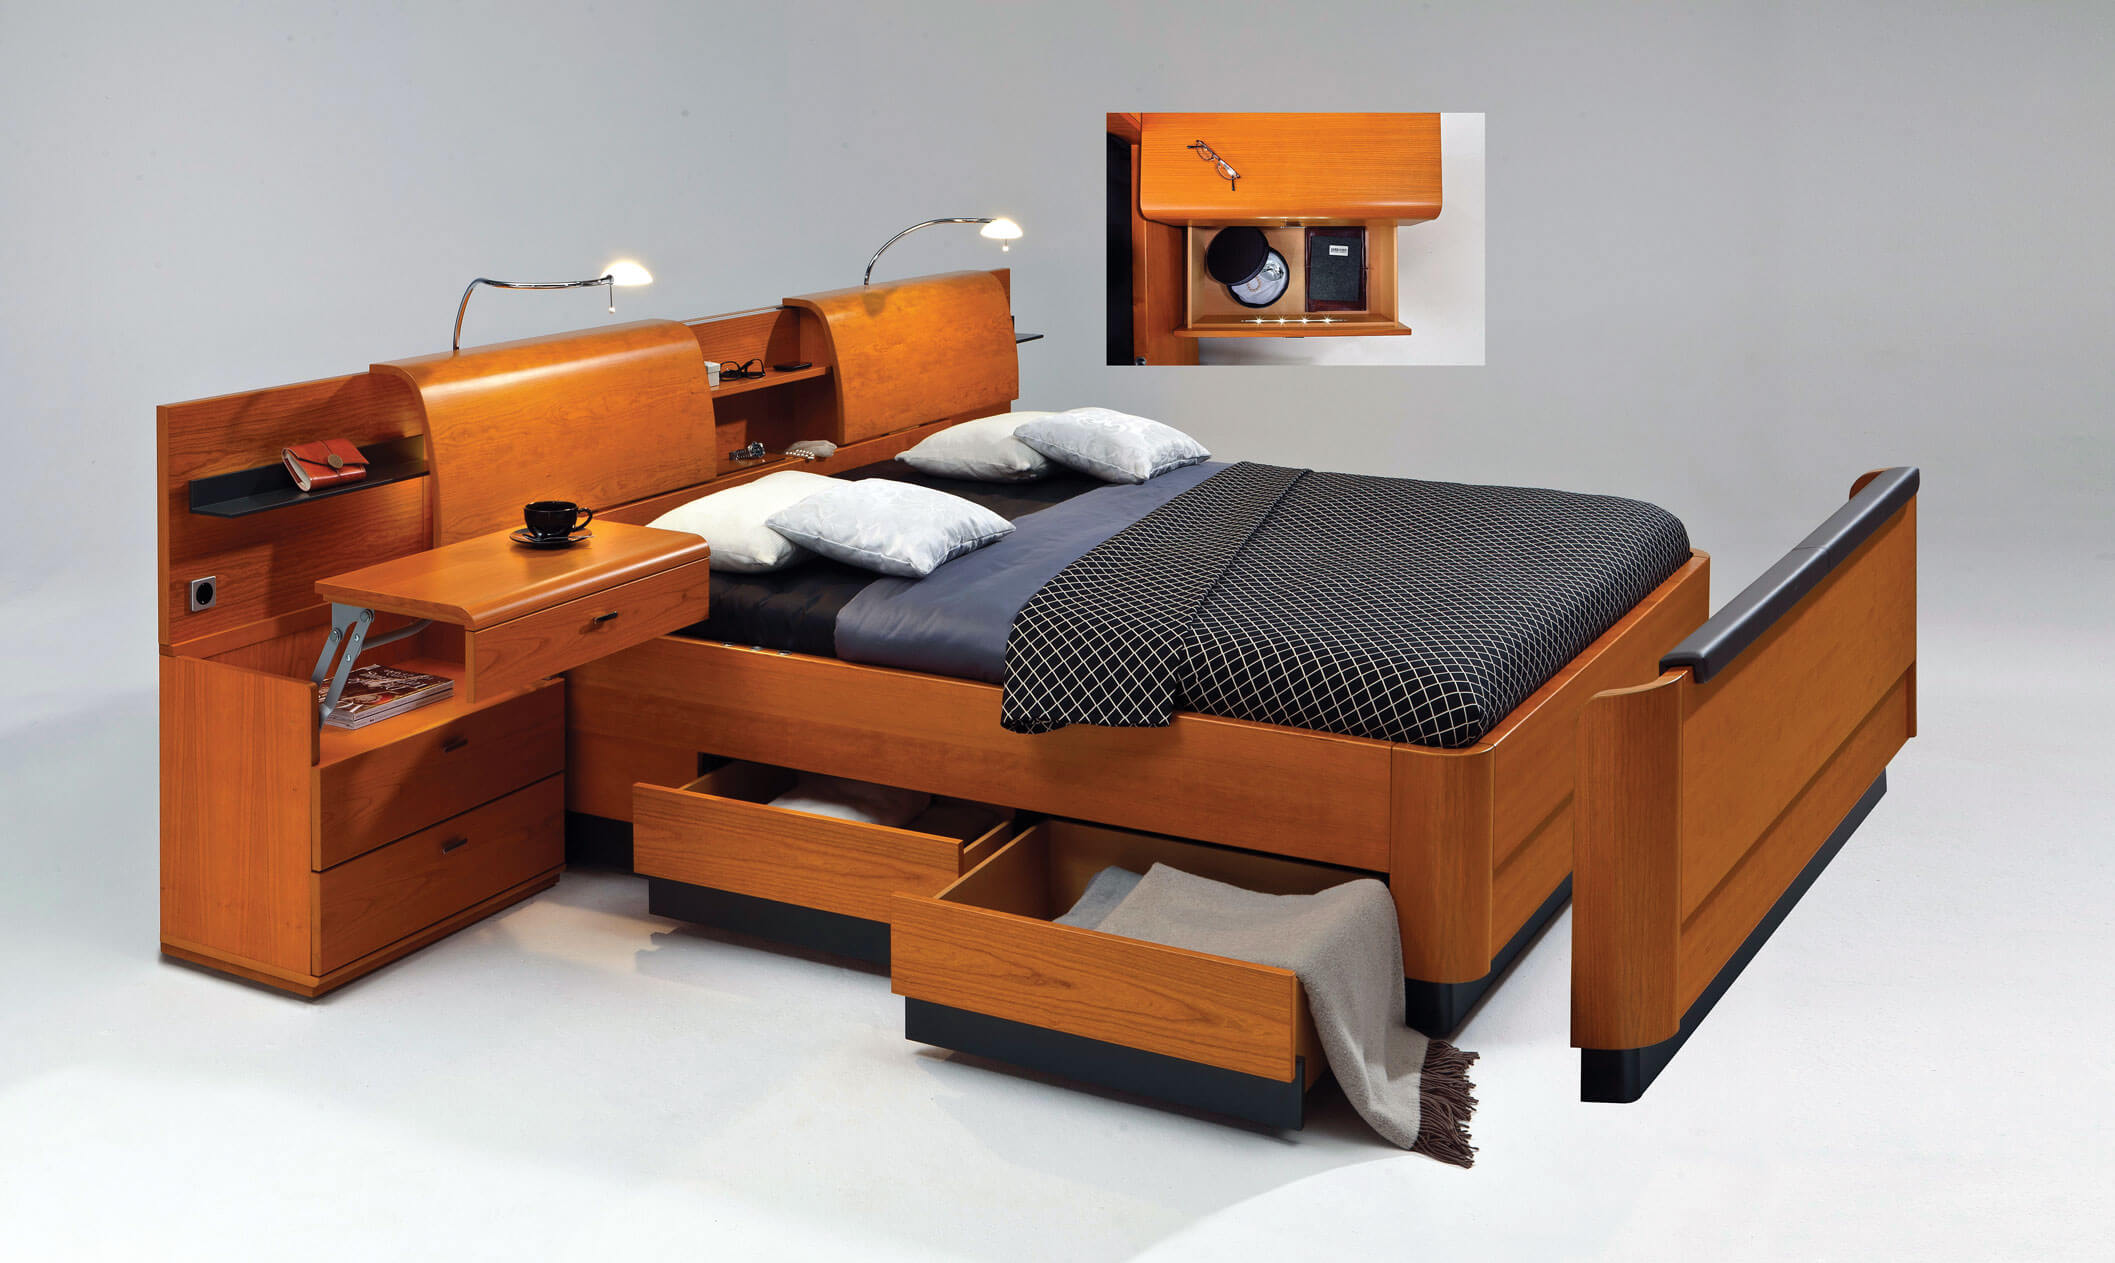 Benefits of multi functional furniture for your home for Furniture furniture